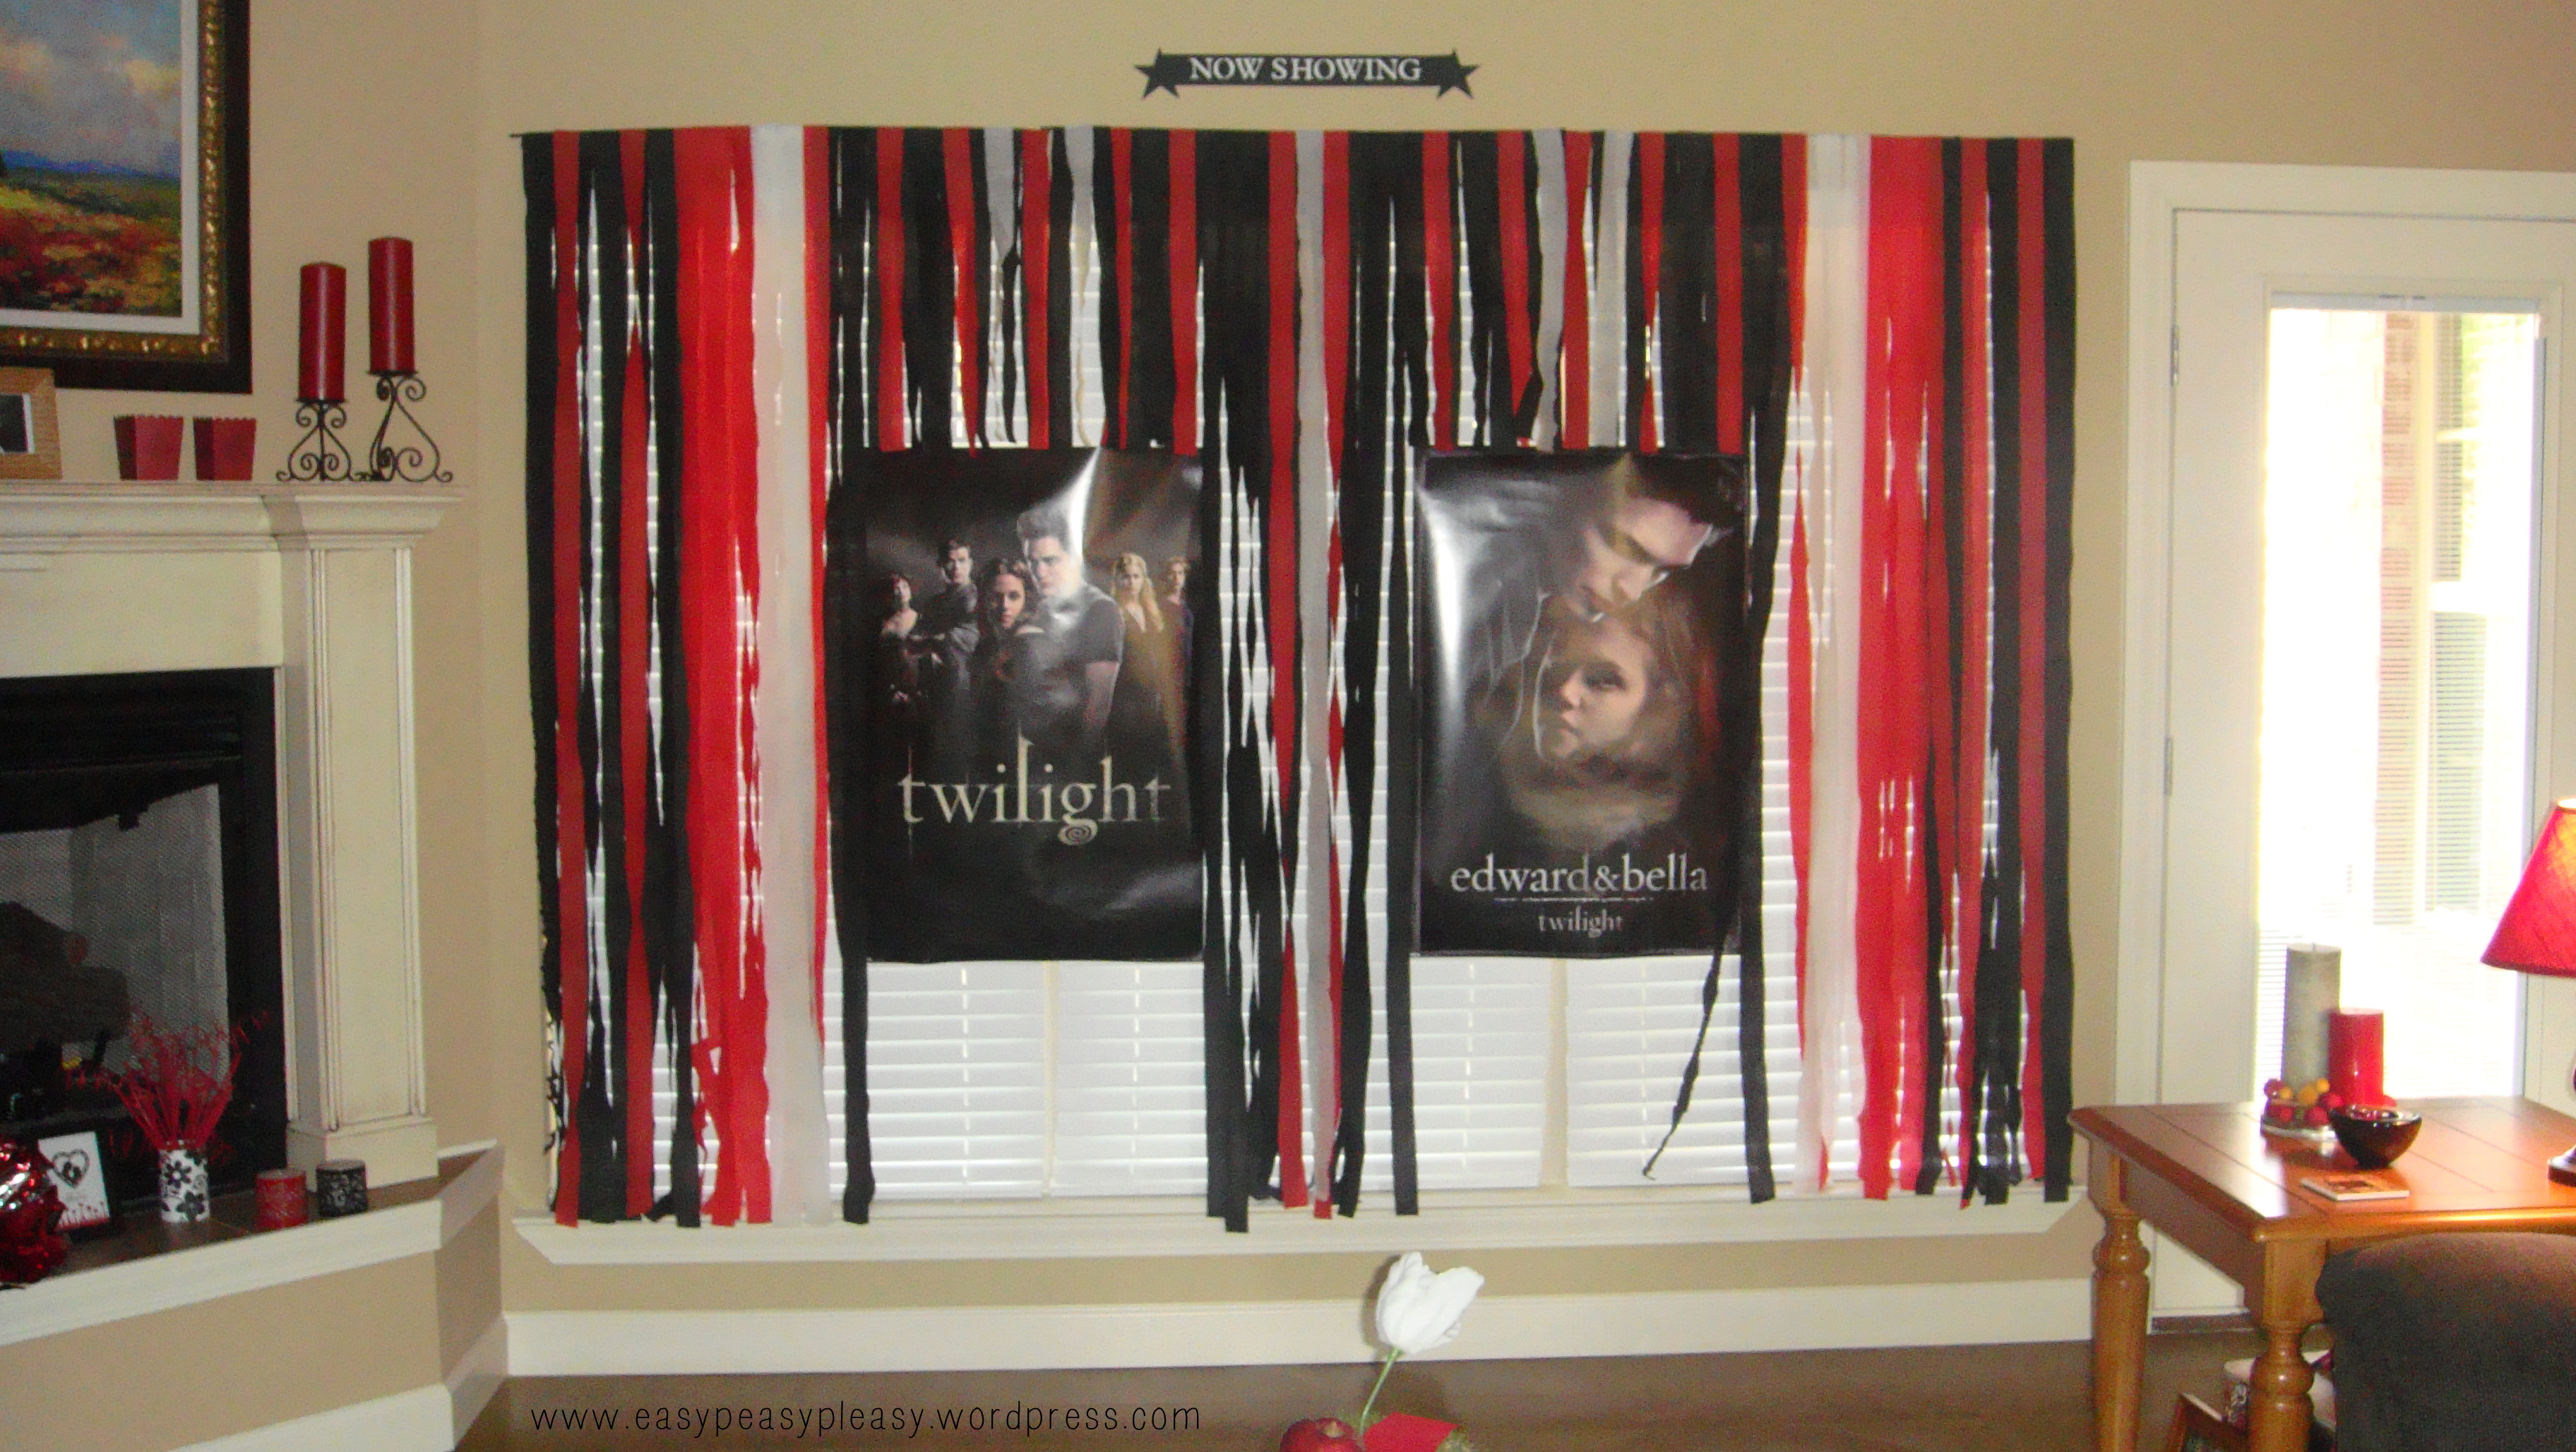 Twilight Party Now Showing Posters Marquee